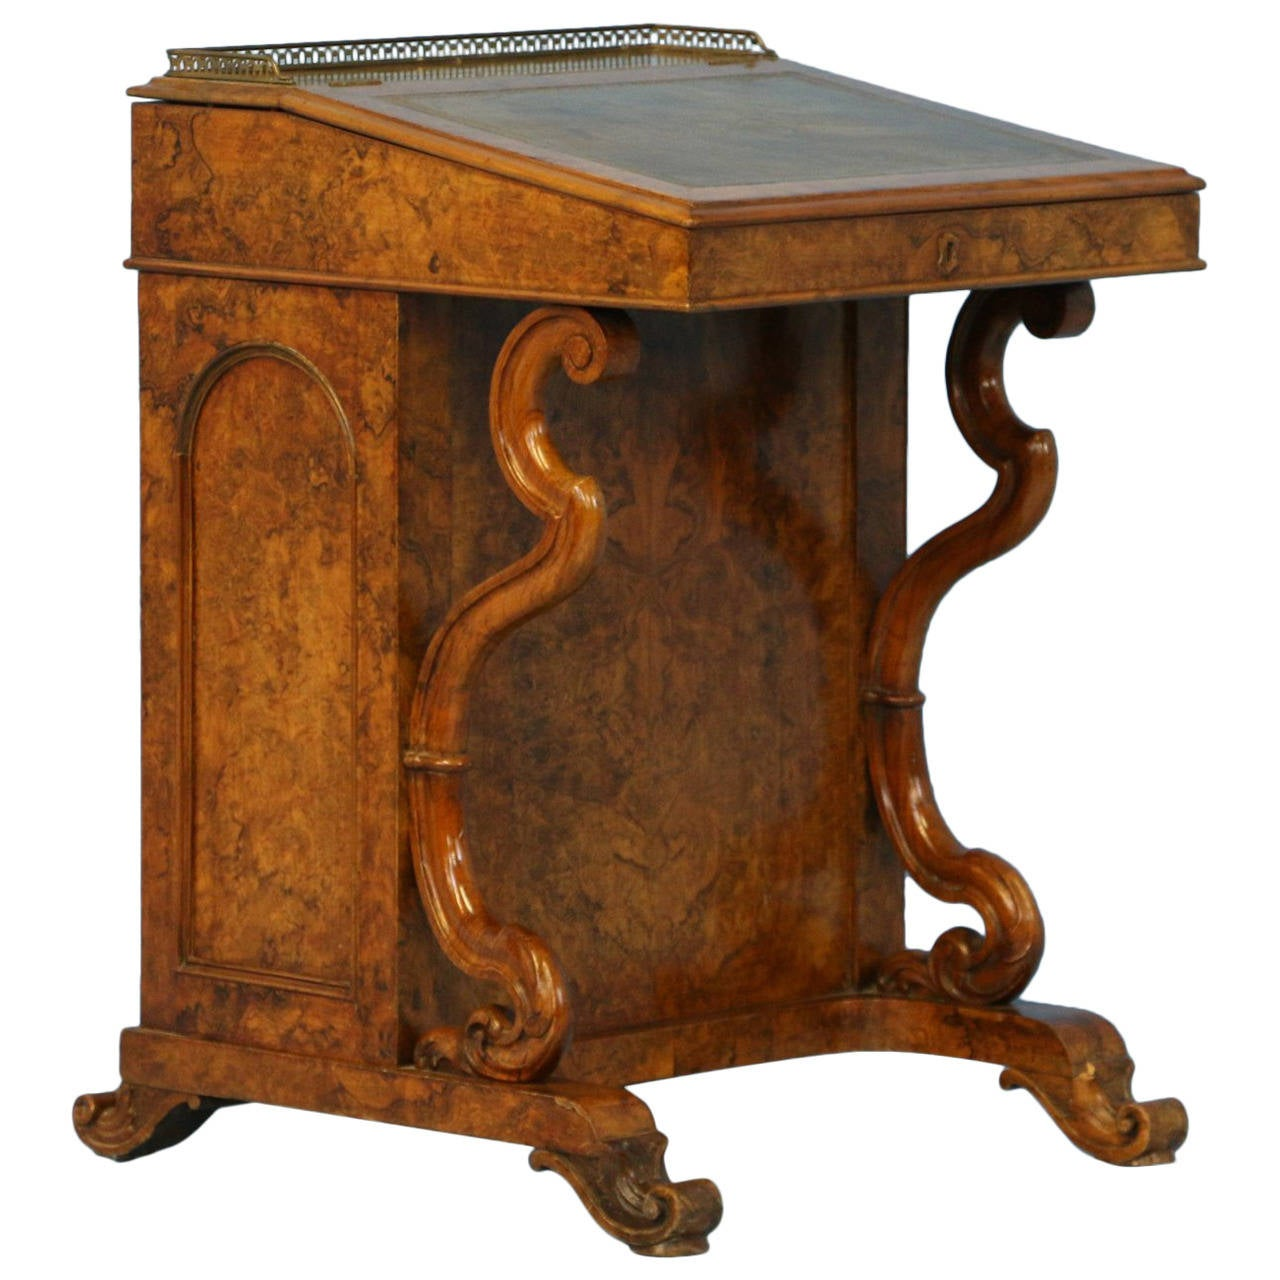 Antique English Davenport Desk, circa 1800 1 - Antique English Davenport Desk, Circa 1800 At 1stdibs